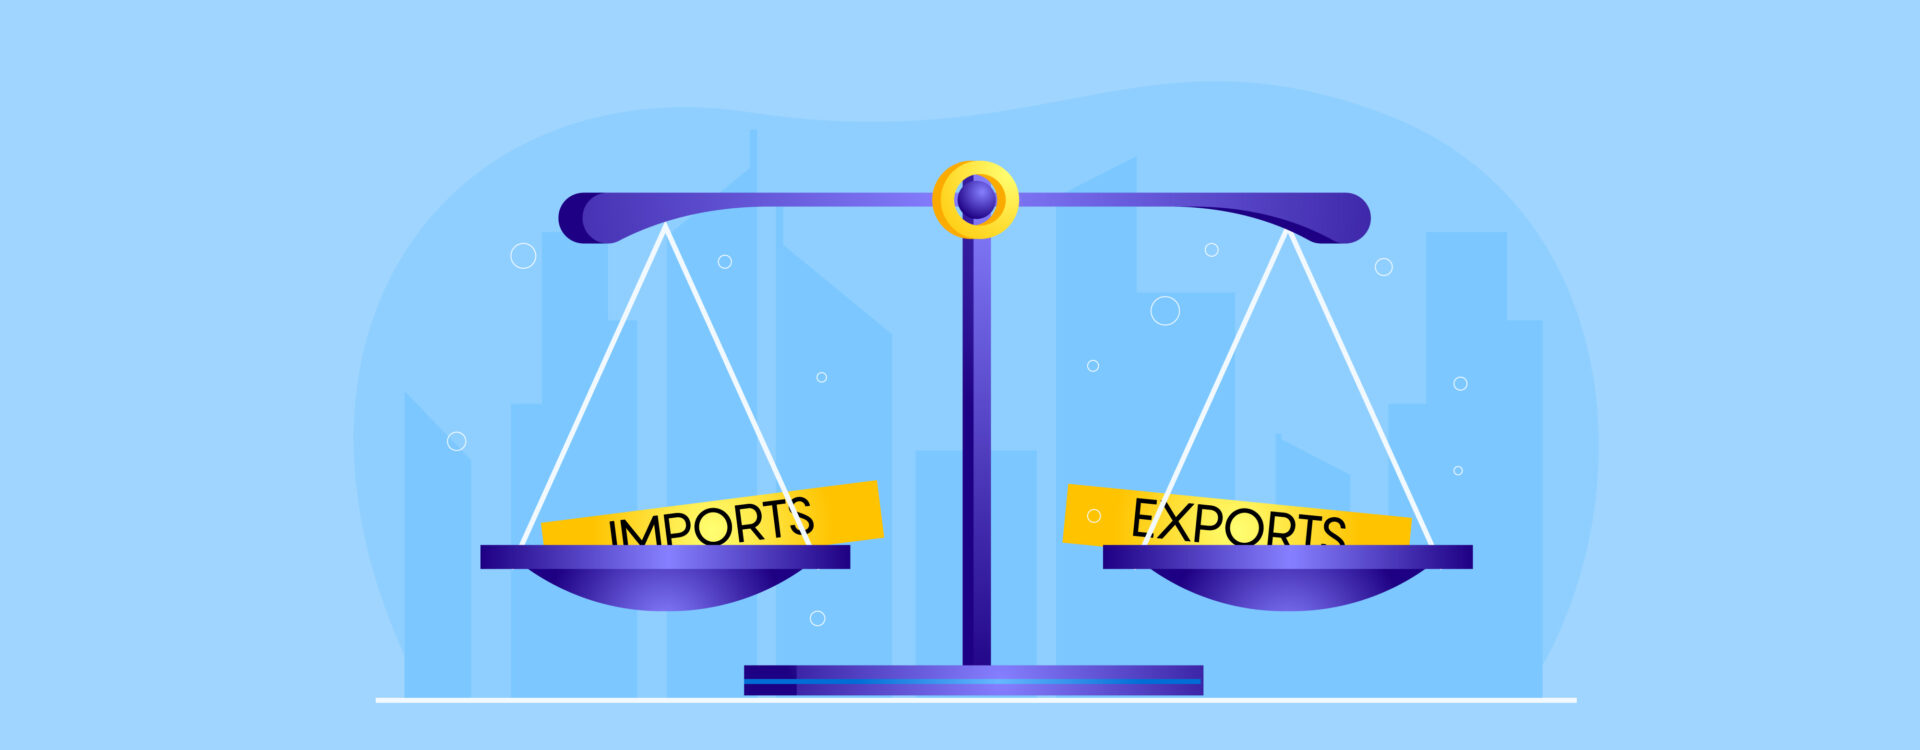 Everything you need to know about Balance of Trade